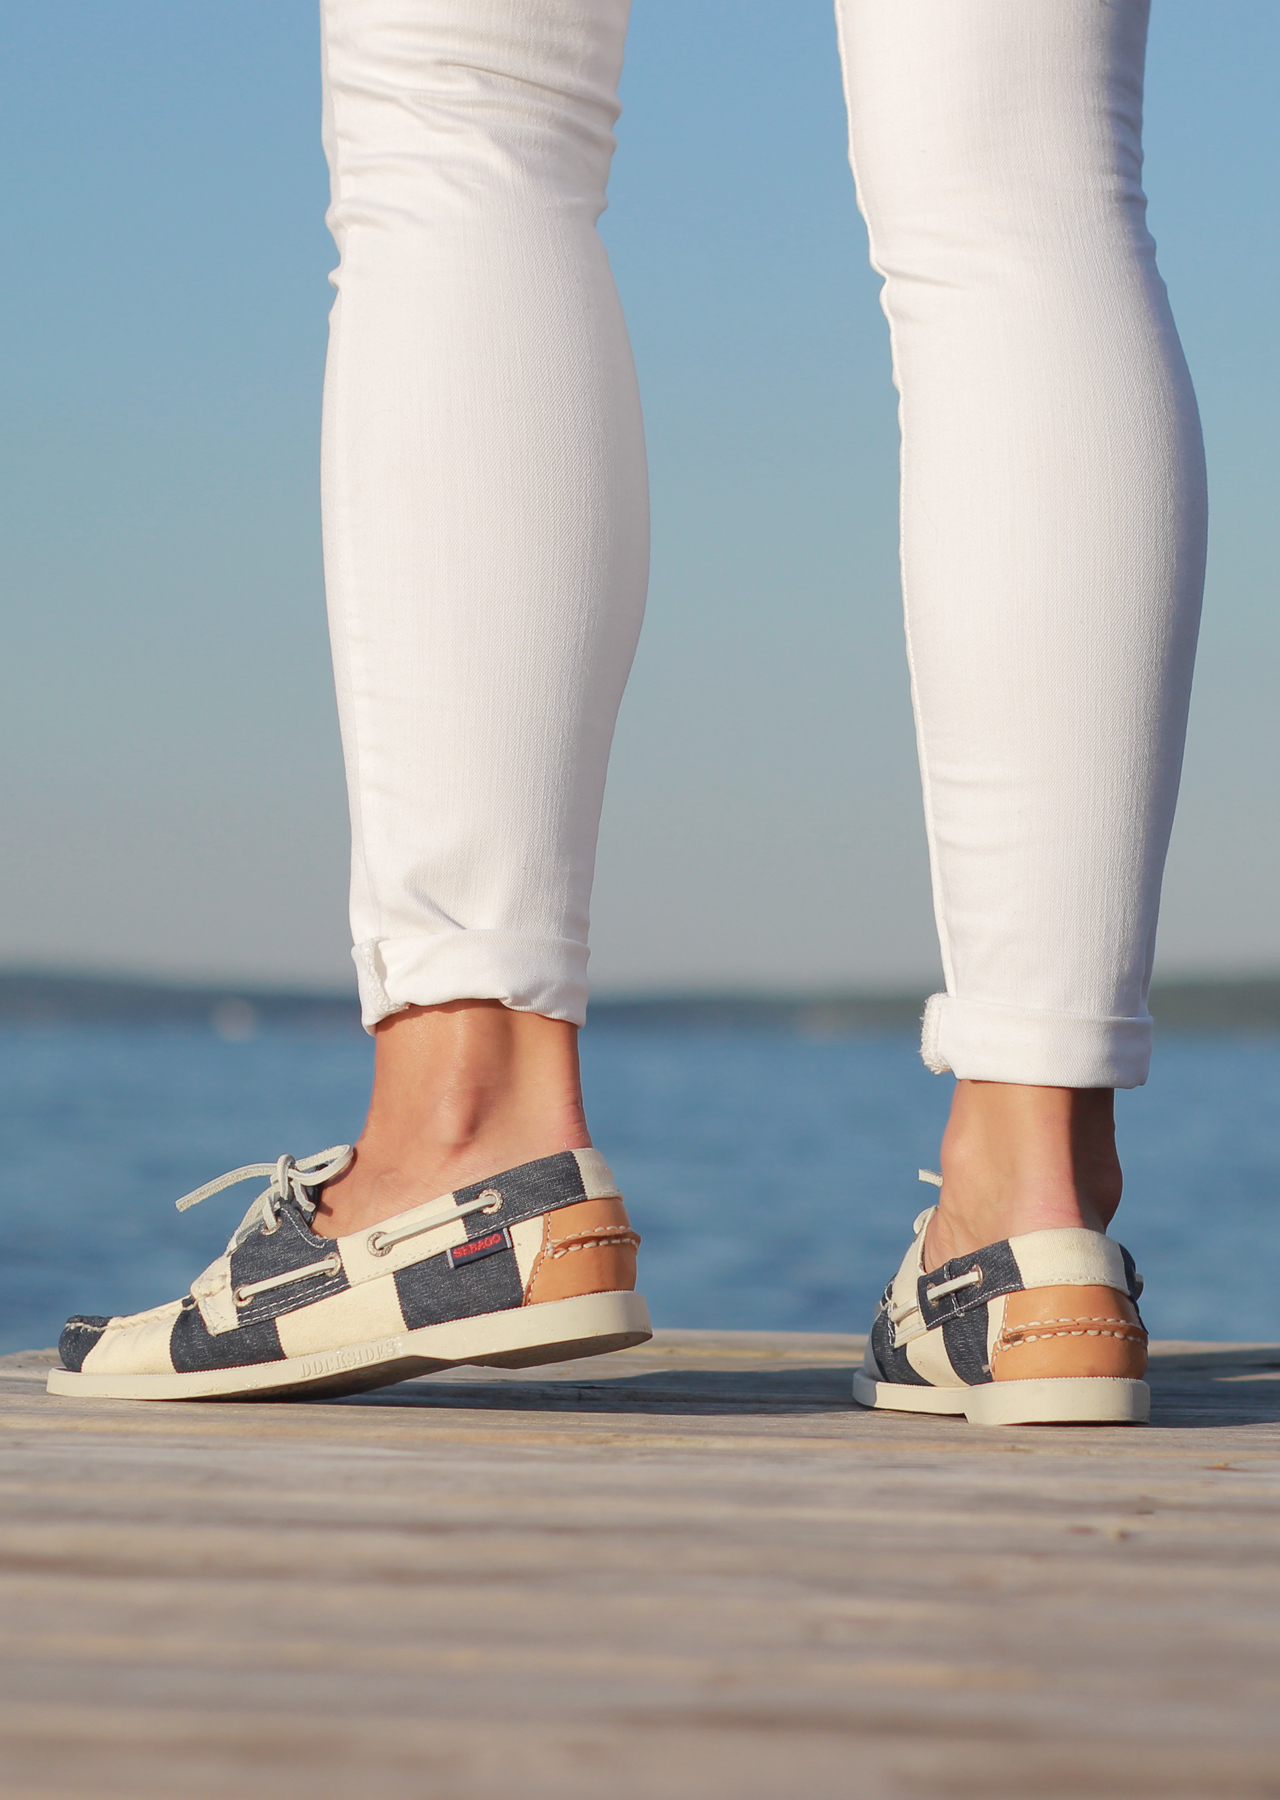 The Steele Maiden: Sebago Shoes at the Lake